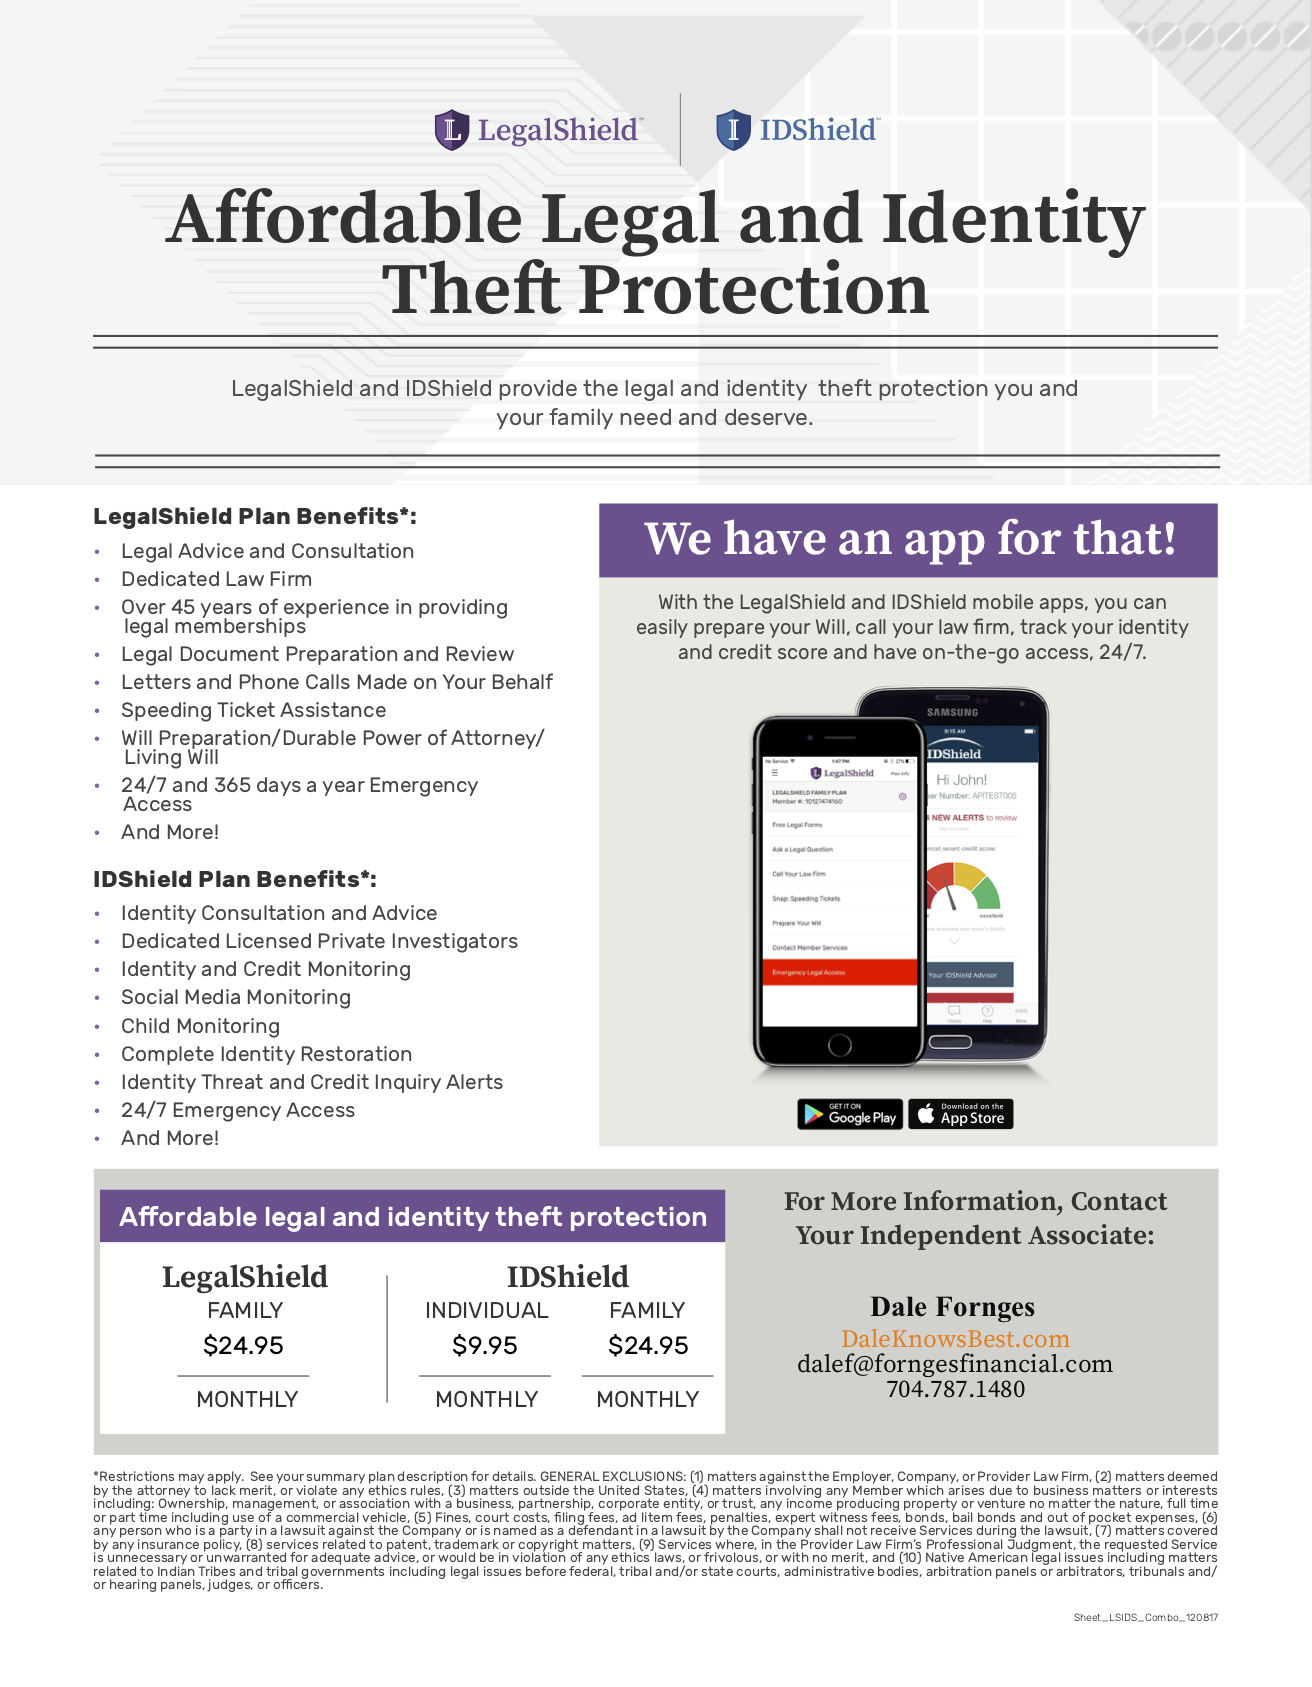 Fornges Financial Now Offers Legal and ID Theft Protection